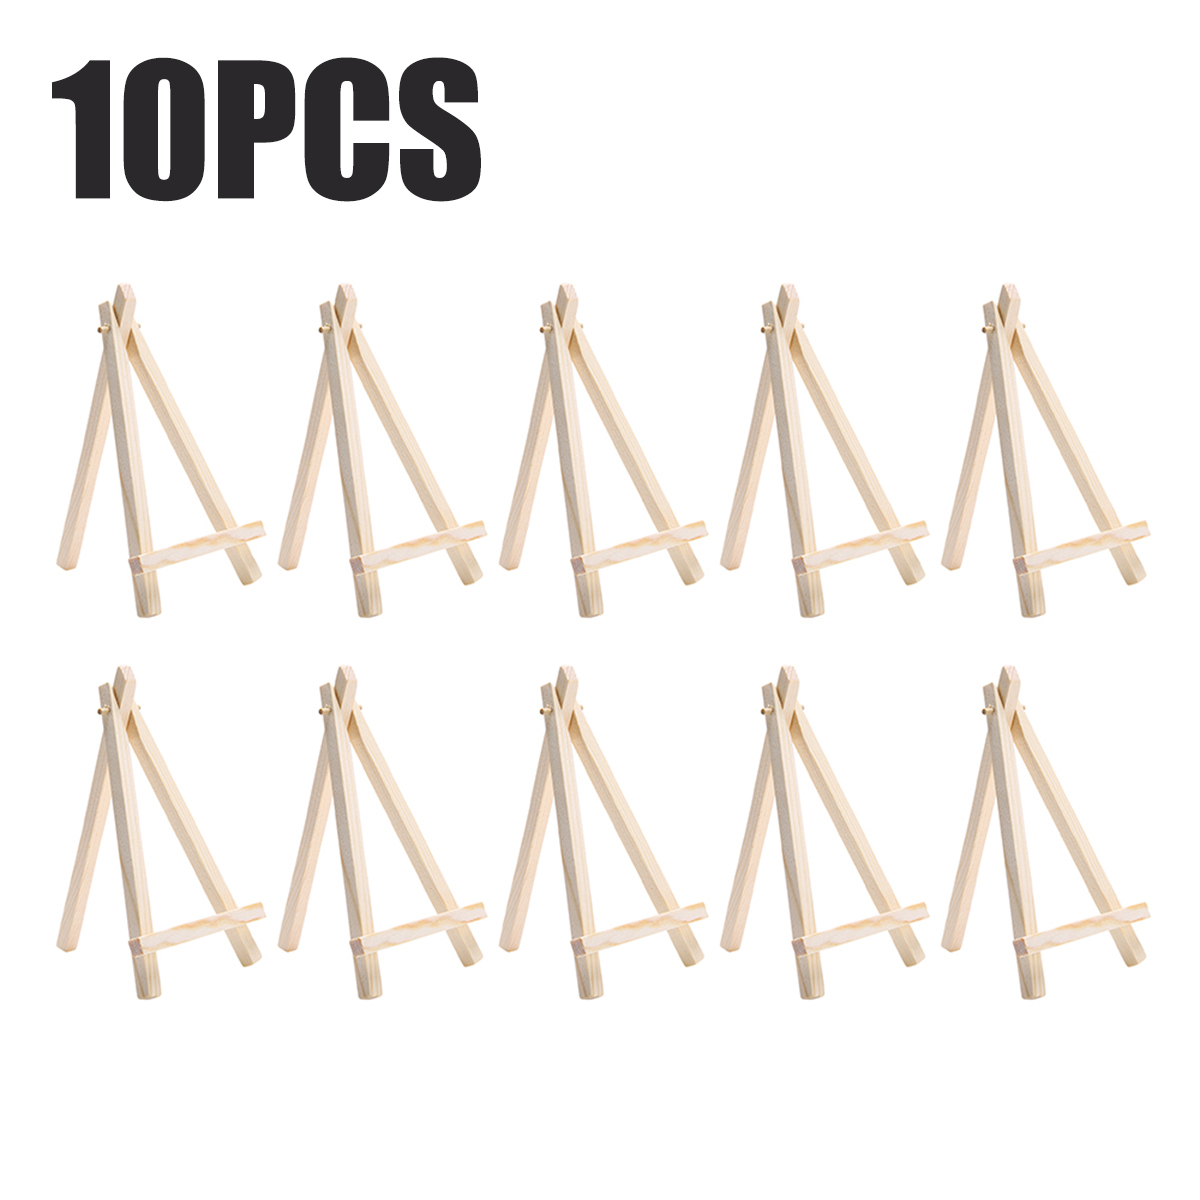 10pcs/set Wooden Mini Easel Stands Table Card Stand Holder Small Picture Display Stand For Home Party Wedding Decoration